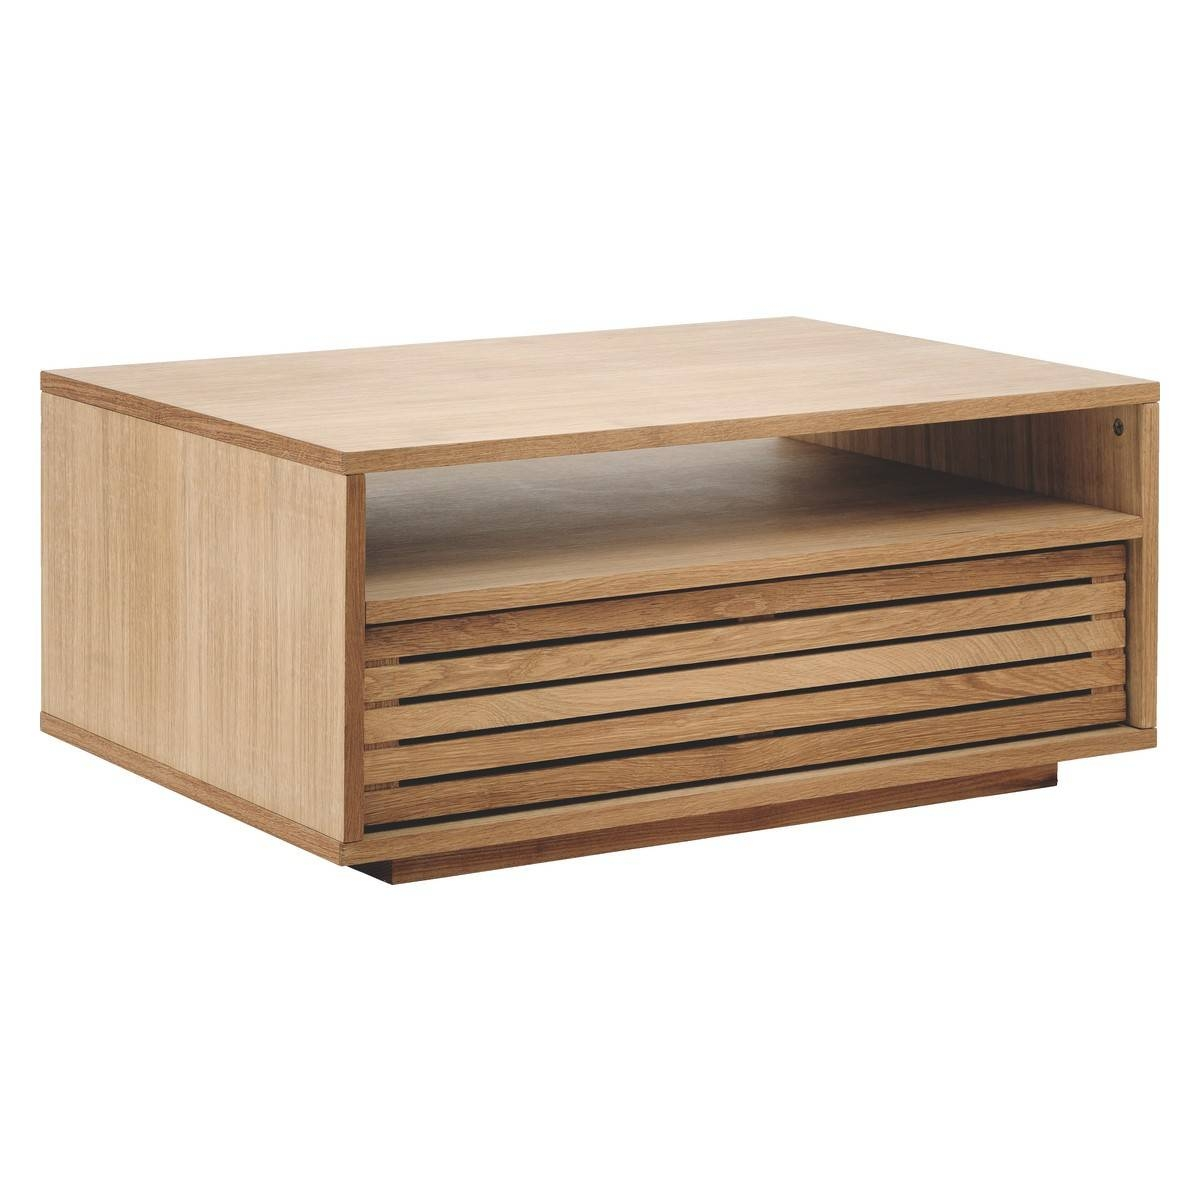 Max Oak Coffee Table With Storage | Buy Now At Habitat Uk within Oak Coffee Table With Drawers (Image 6 of 15)